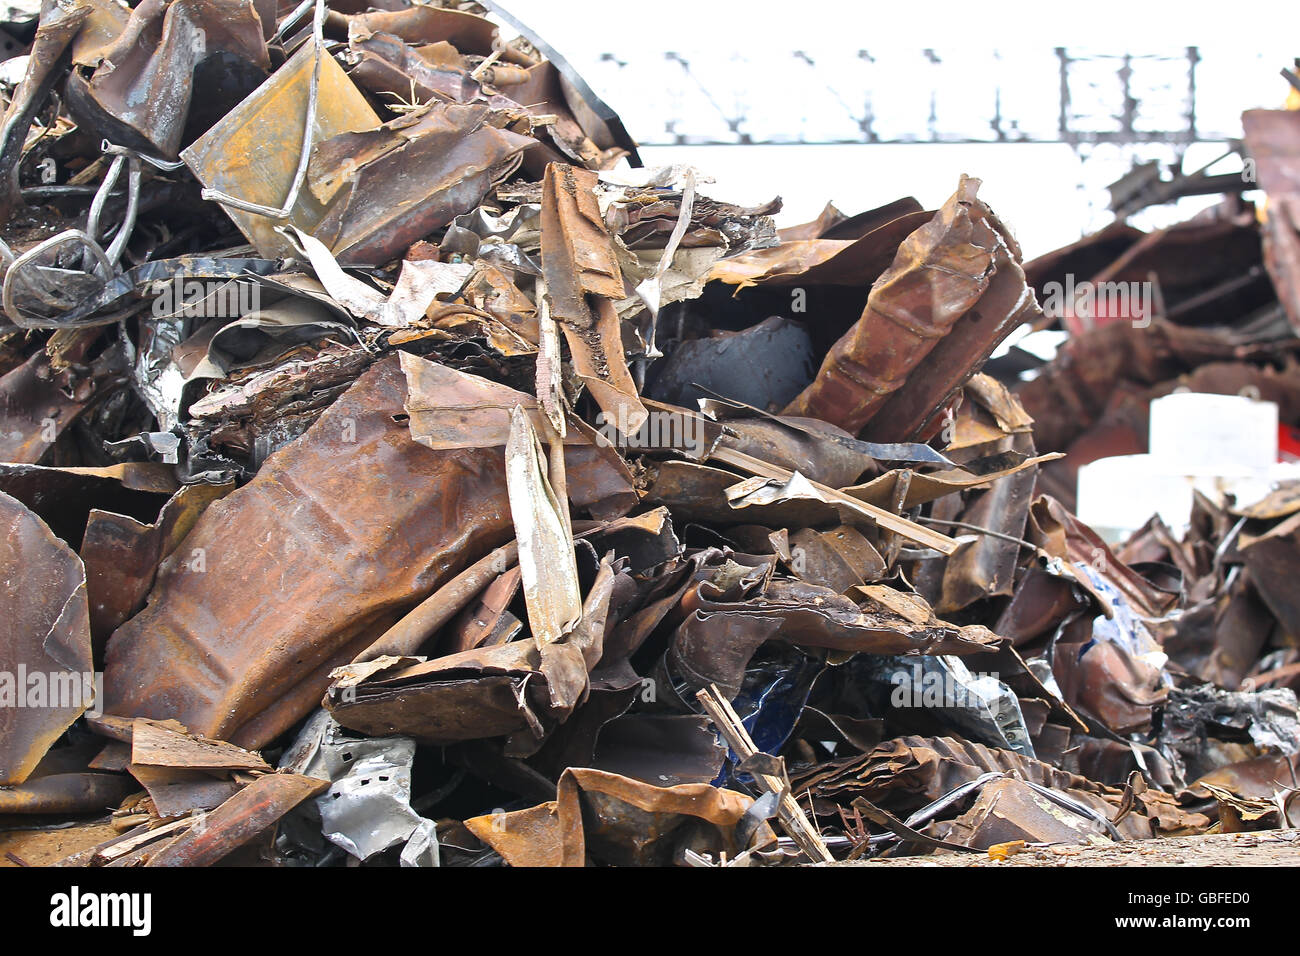 large pile of scrap metal for further processing - Stock Image